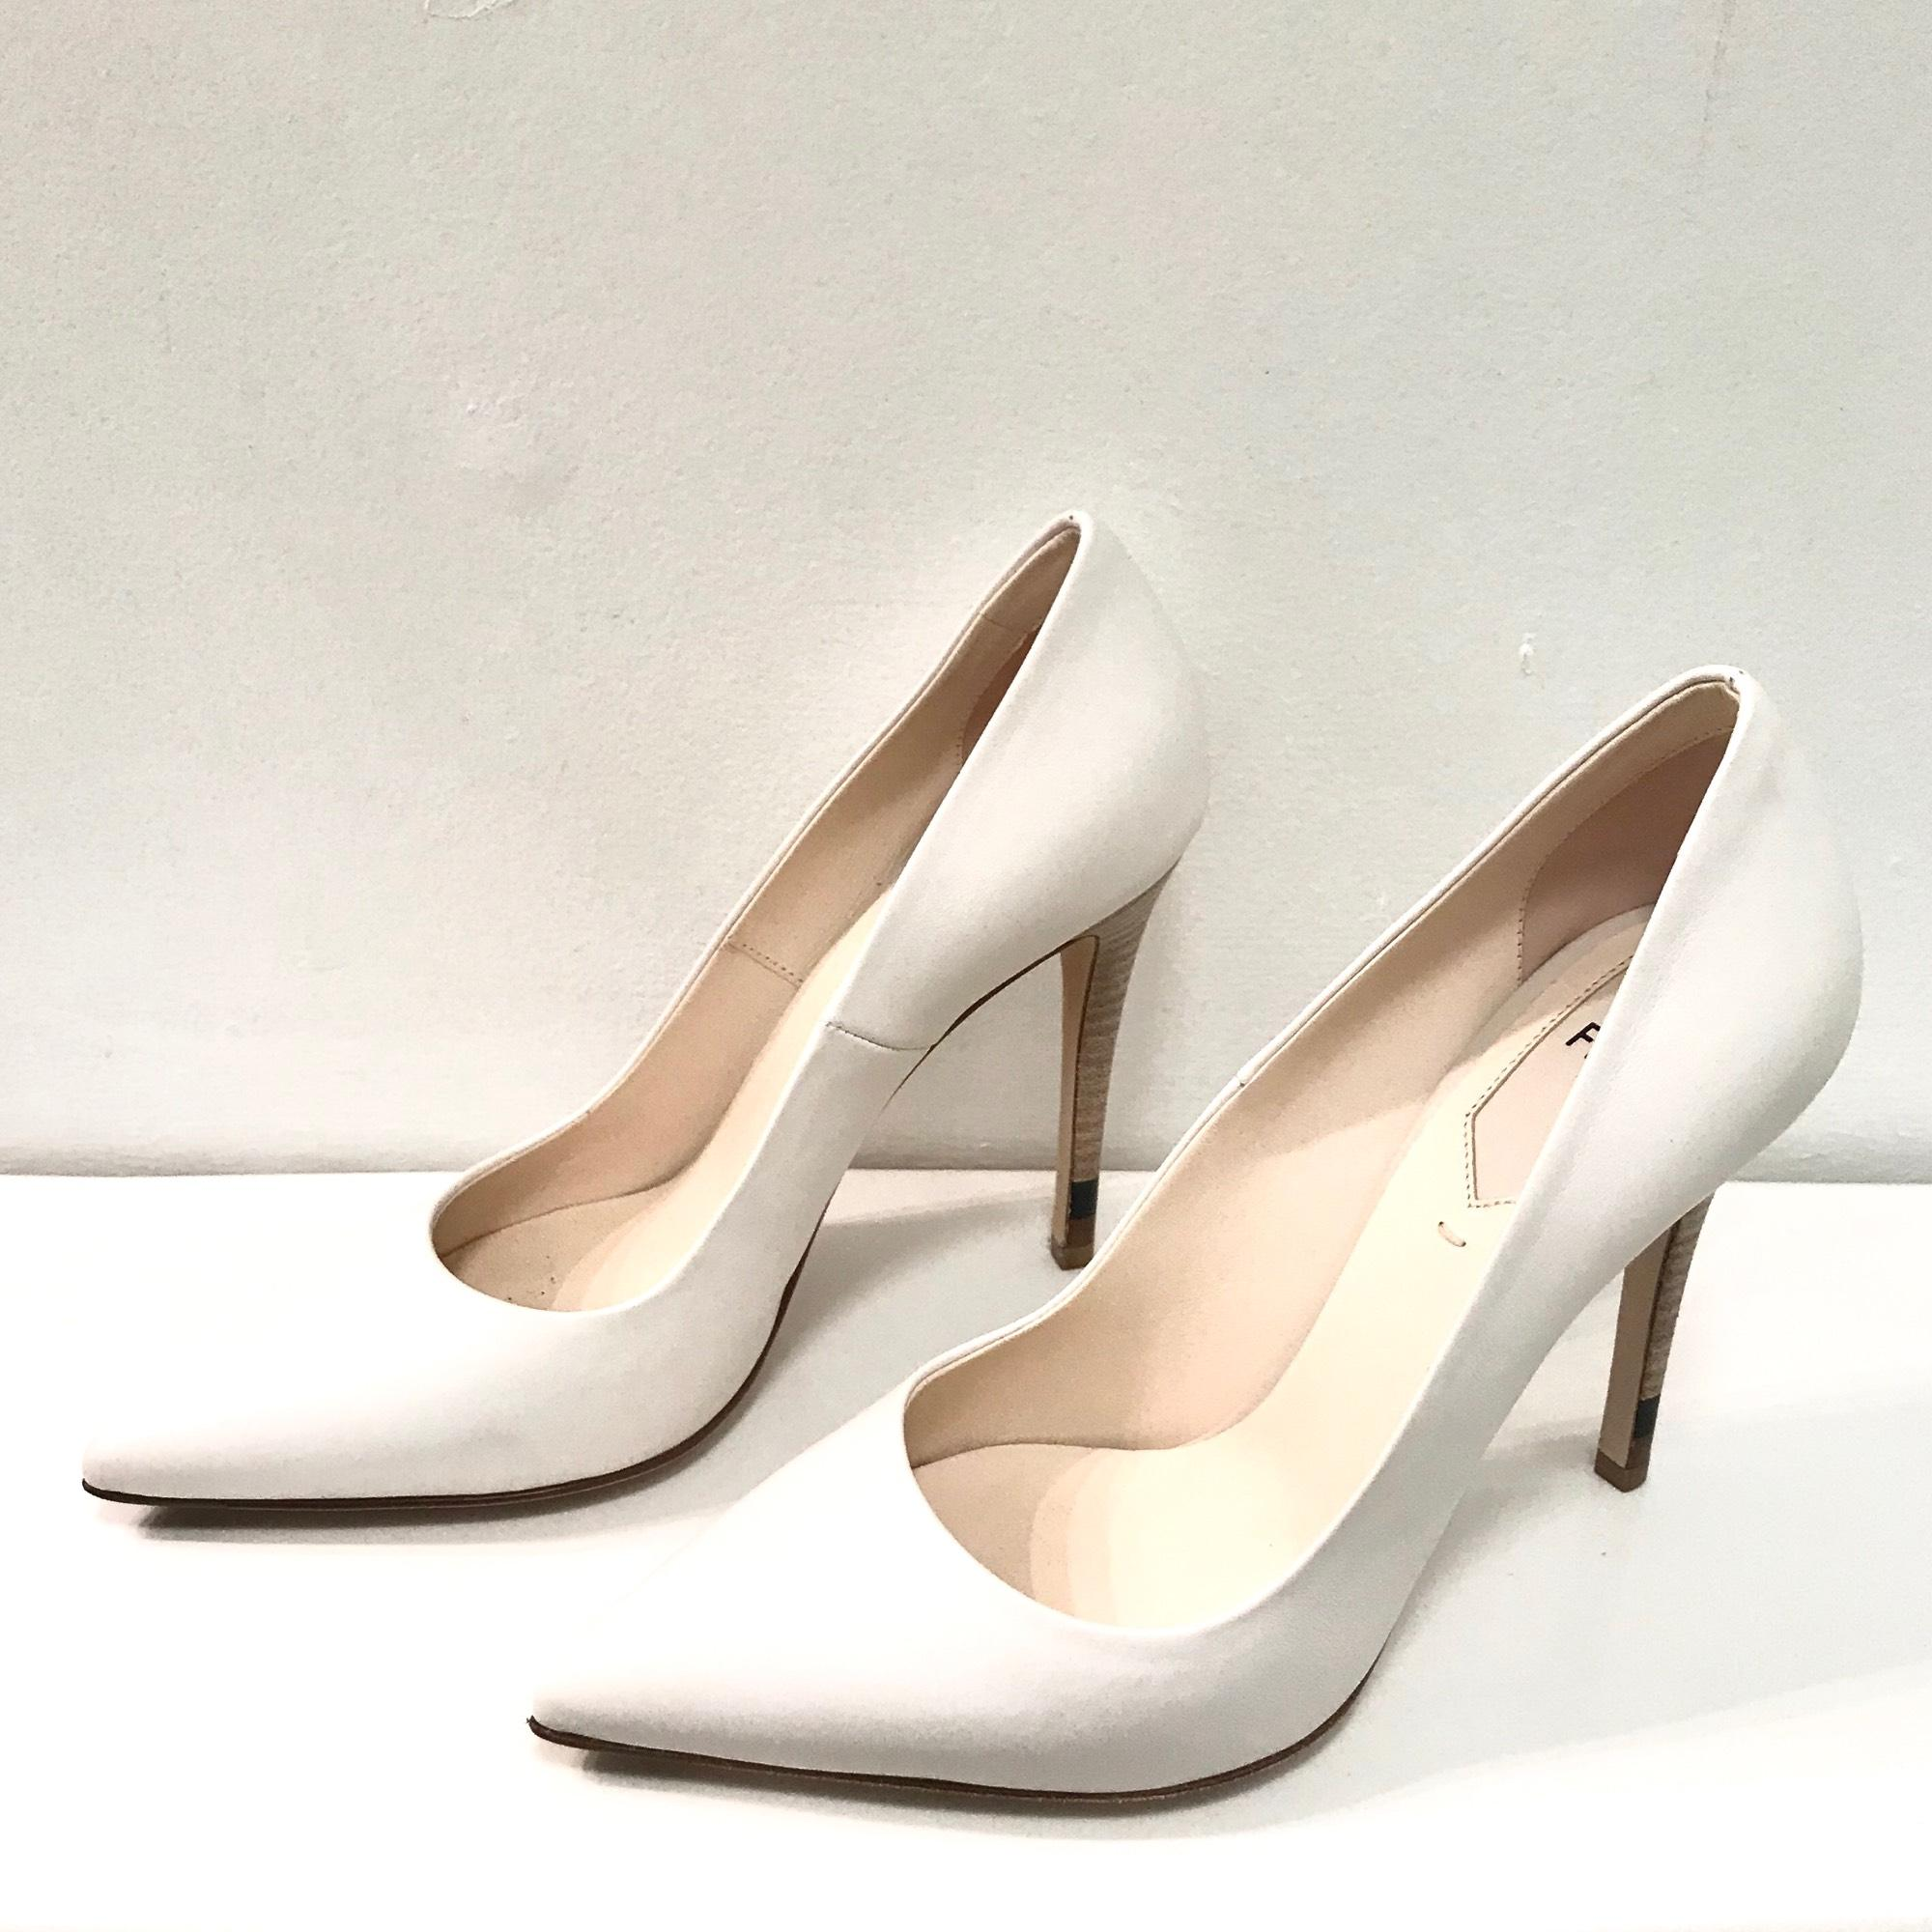 190e890b951 ... B Fendi White Ice Anne Stiletto Pumps Size US 7 7 7 Regular (M